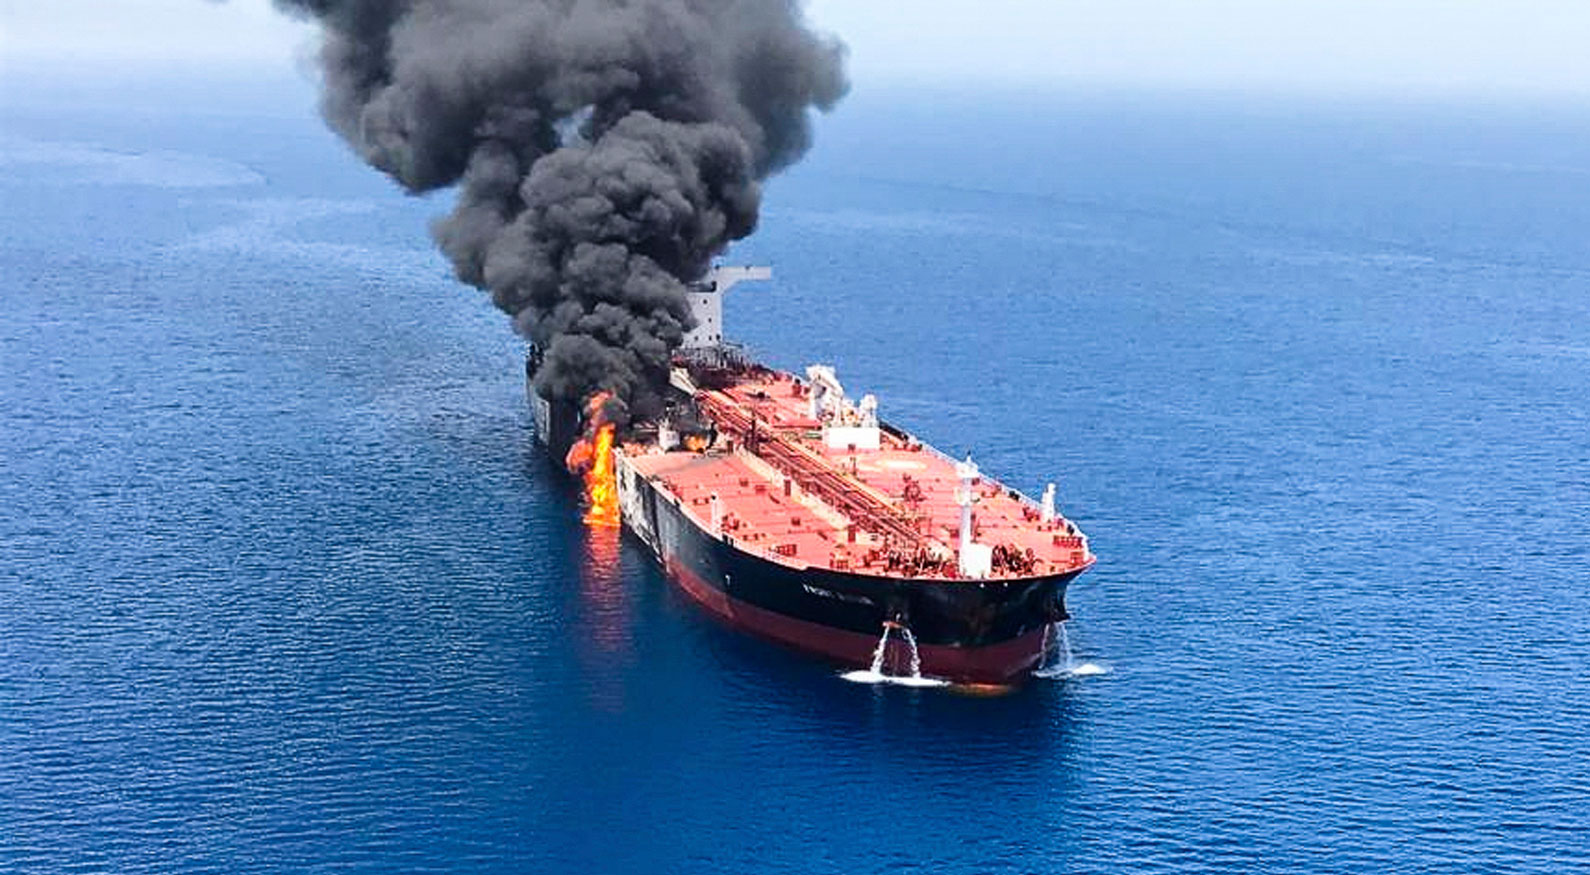 Fire and smoke rising from a tanker that was attacked in the Gulf of Oman on June 13, 2019.